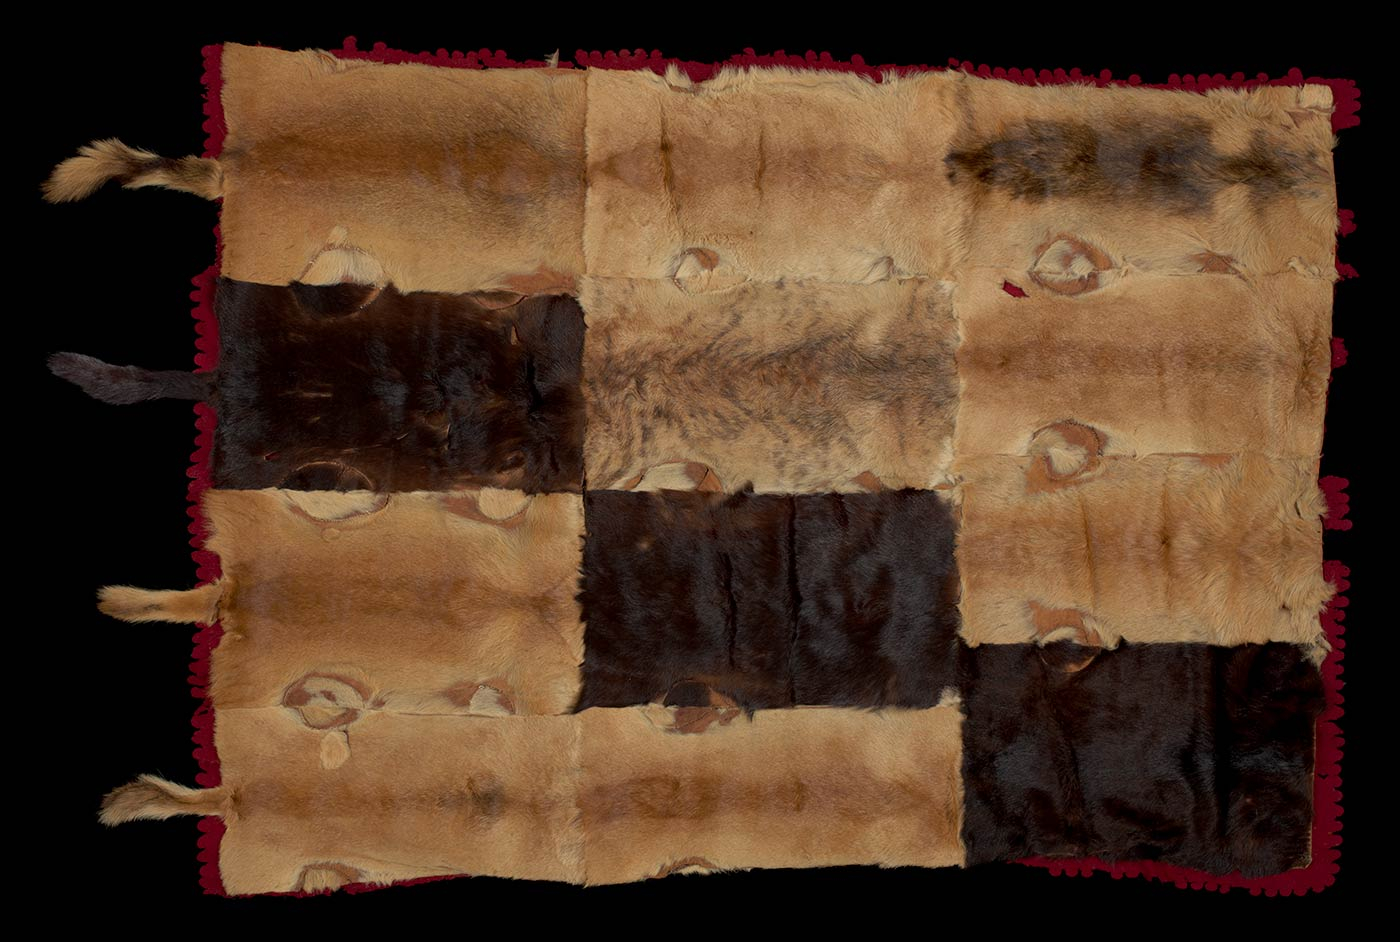 Buggy (carriage) rug made from 12 rectangle-cut Dingo skins backed with maroon felt. The felt has a scalloped edge and is detailed with yellow woven cord which is sewn around the edge and looped at the corners. One end features four hanging dingo tails.